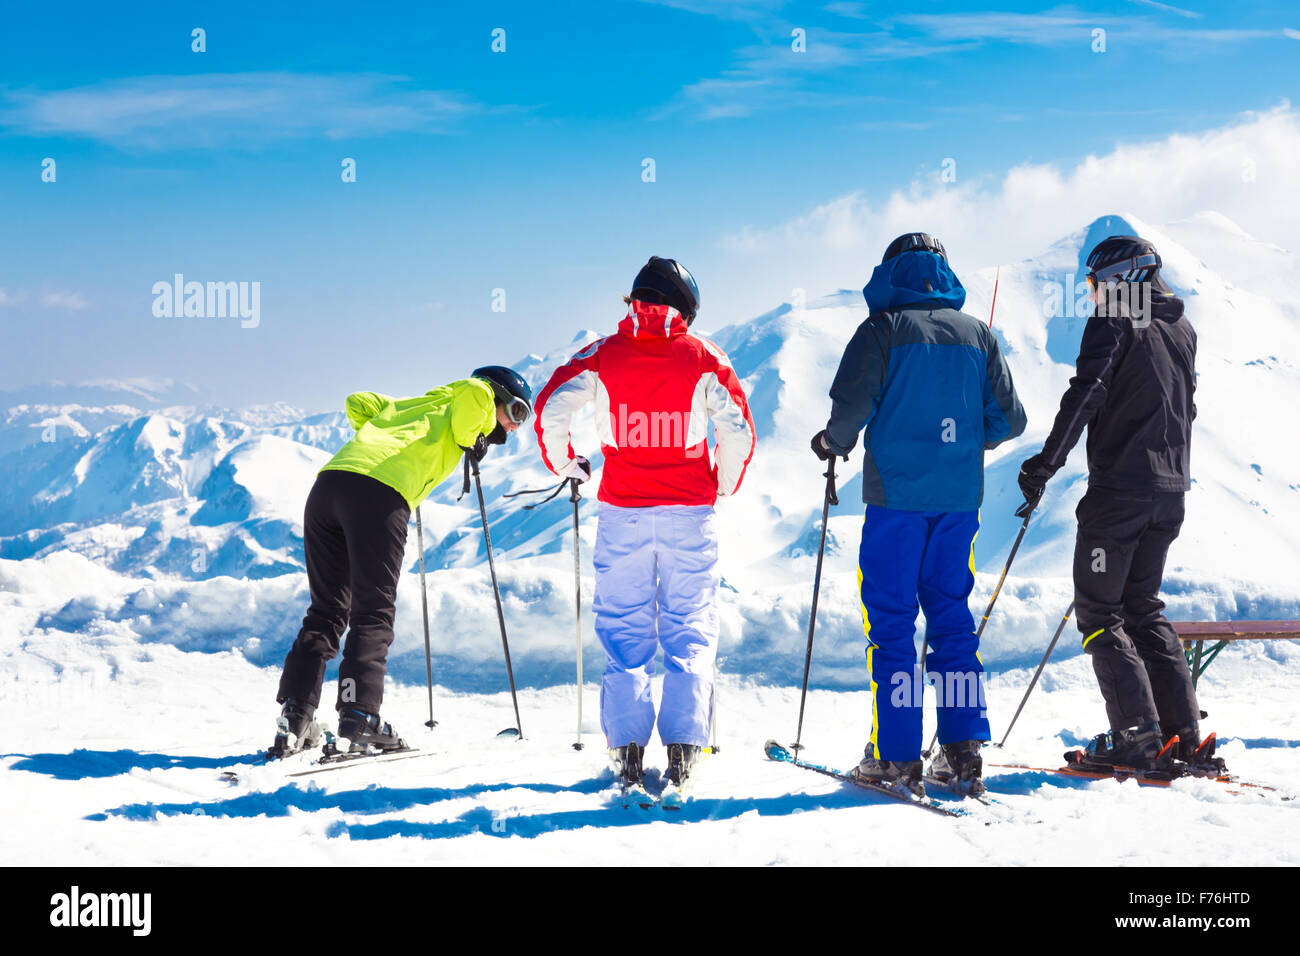 Group of friends skiing. - Stock Image